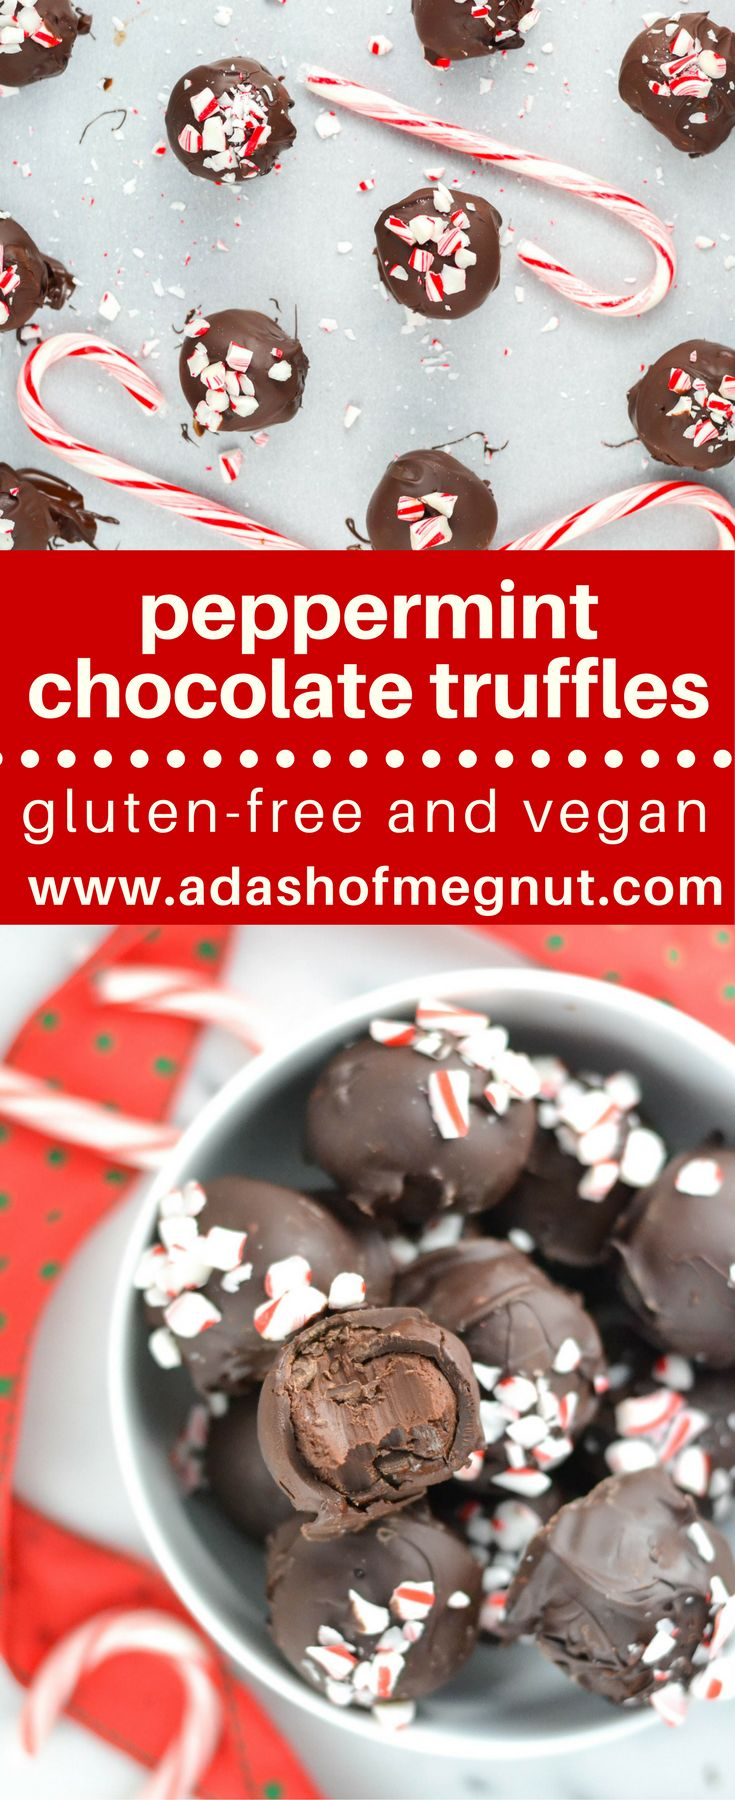 These gluten-free vegan peppermint chocolate truffles are the ultimate holiday dessert! They're made with just a few ingredients you can find in your pantry! #glutenfree #dairyfree #vegan #chocolate #christmas  via @adashofmegnut